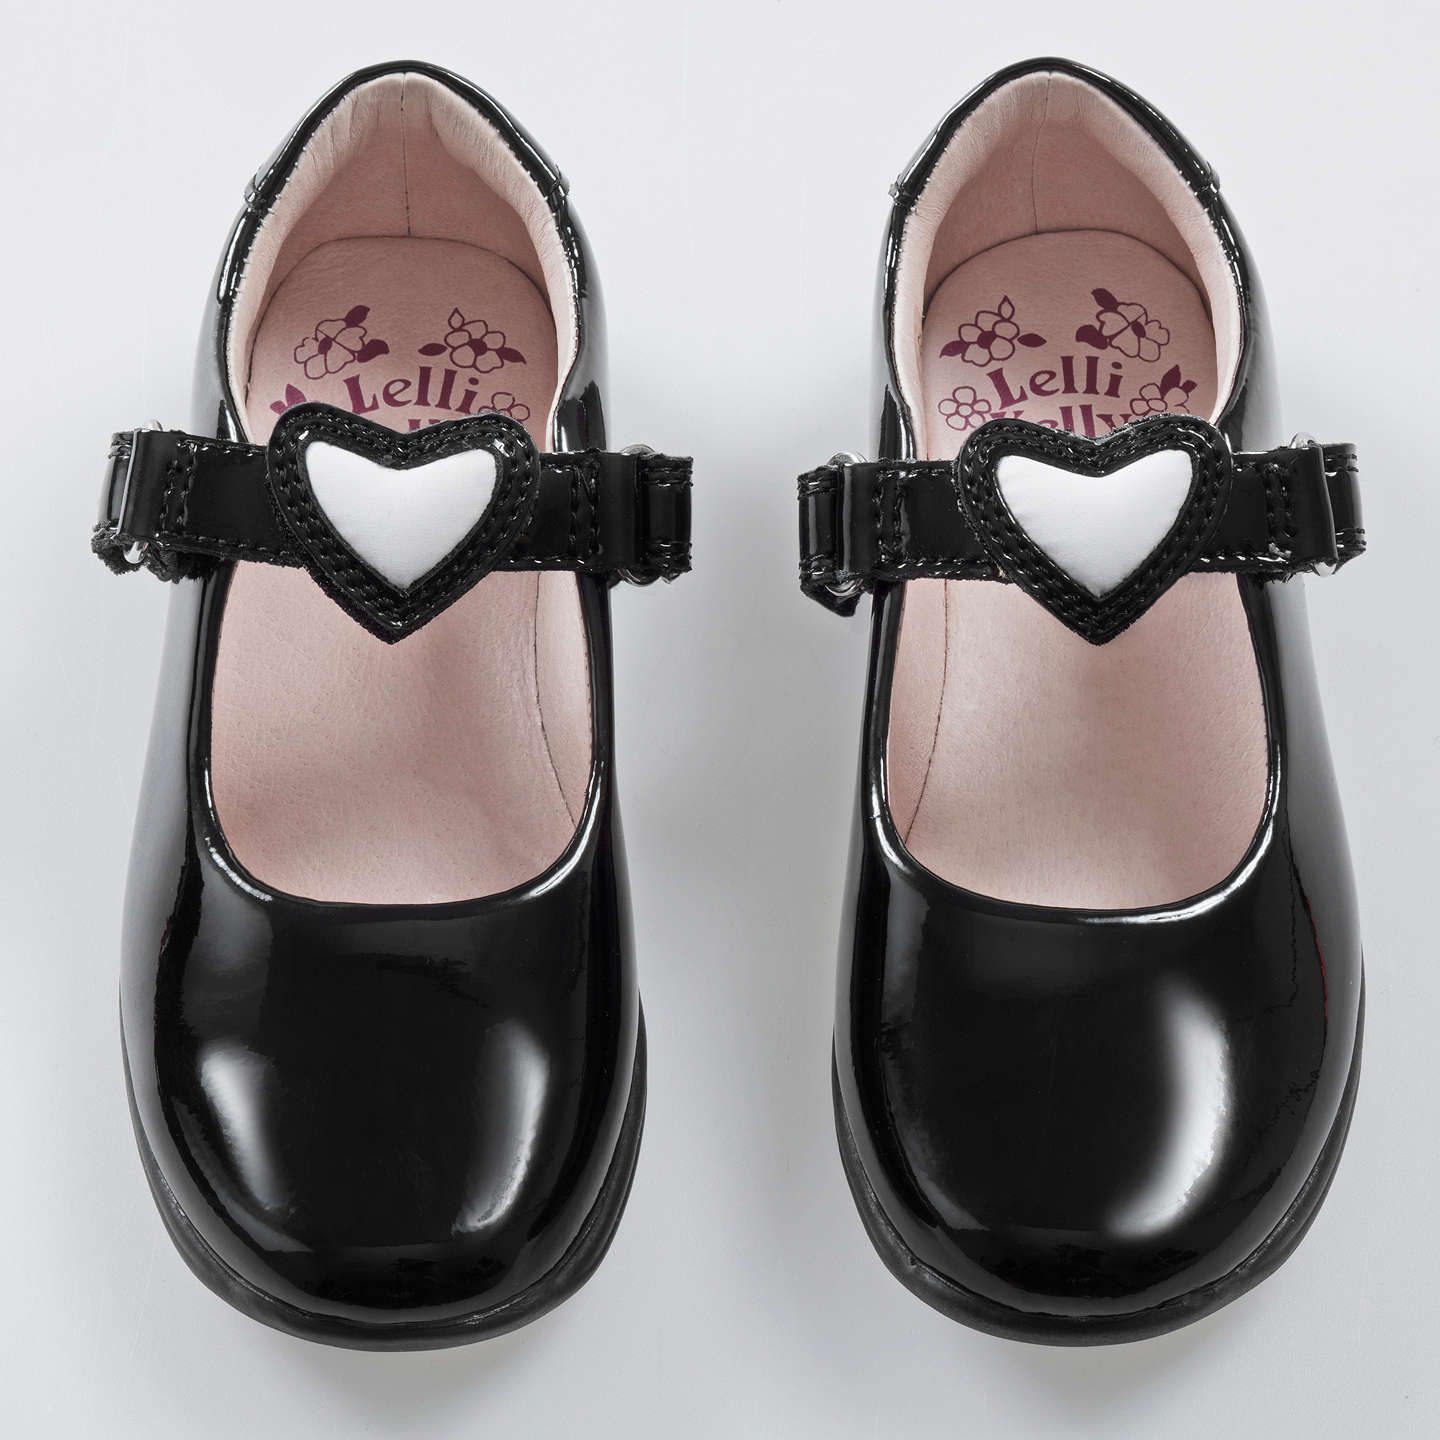 c6c1af30 BuyLelli Kelly Children's Dolly Heart Leather School Shoes, Black Patent,  30F Online at johnlewis.com